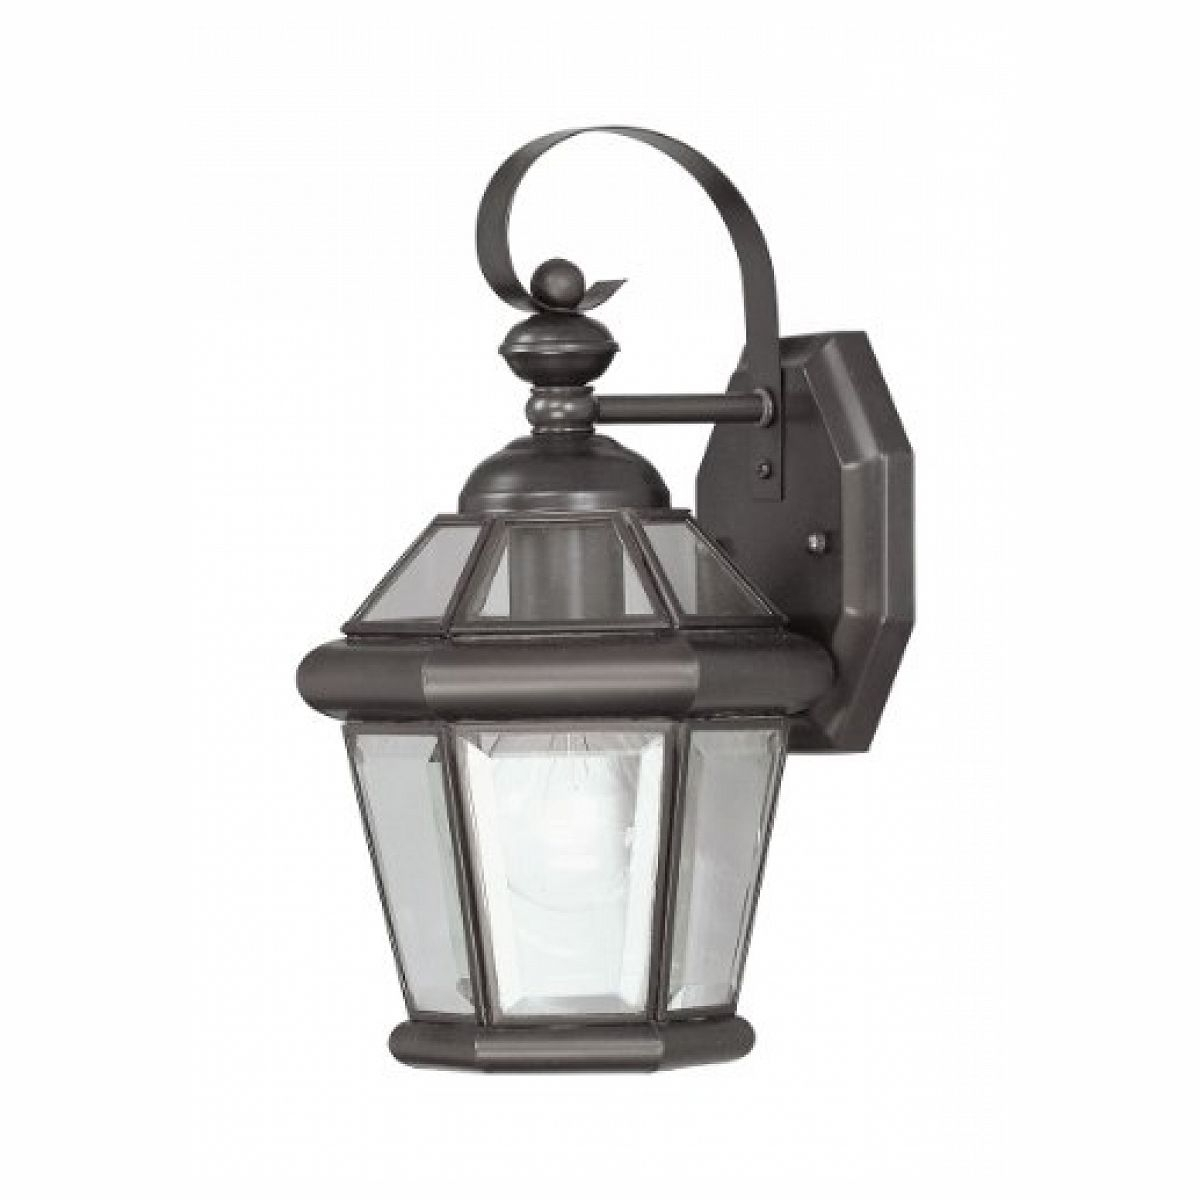 2018 Outdoor Wall Lights At Wickes Intended For Flat Wall Light Fixtures: Livex Lighting 206107 Outdoor Wall Lantern (View 1 of 20)